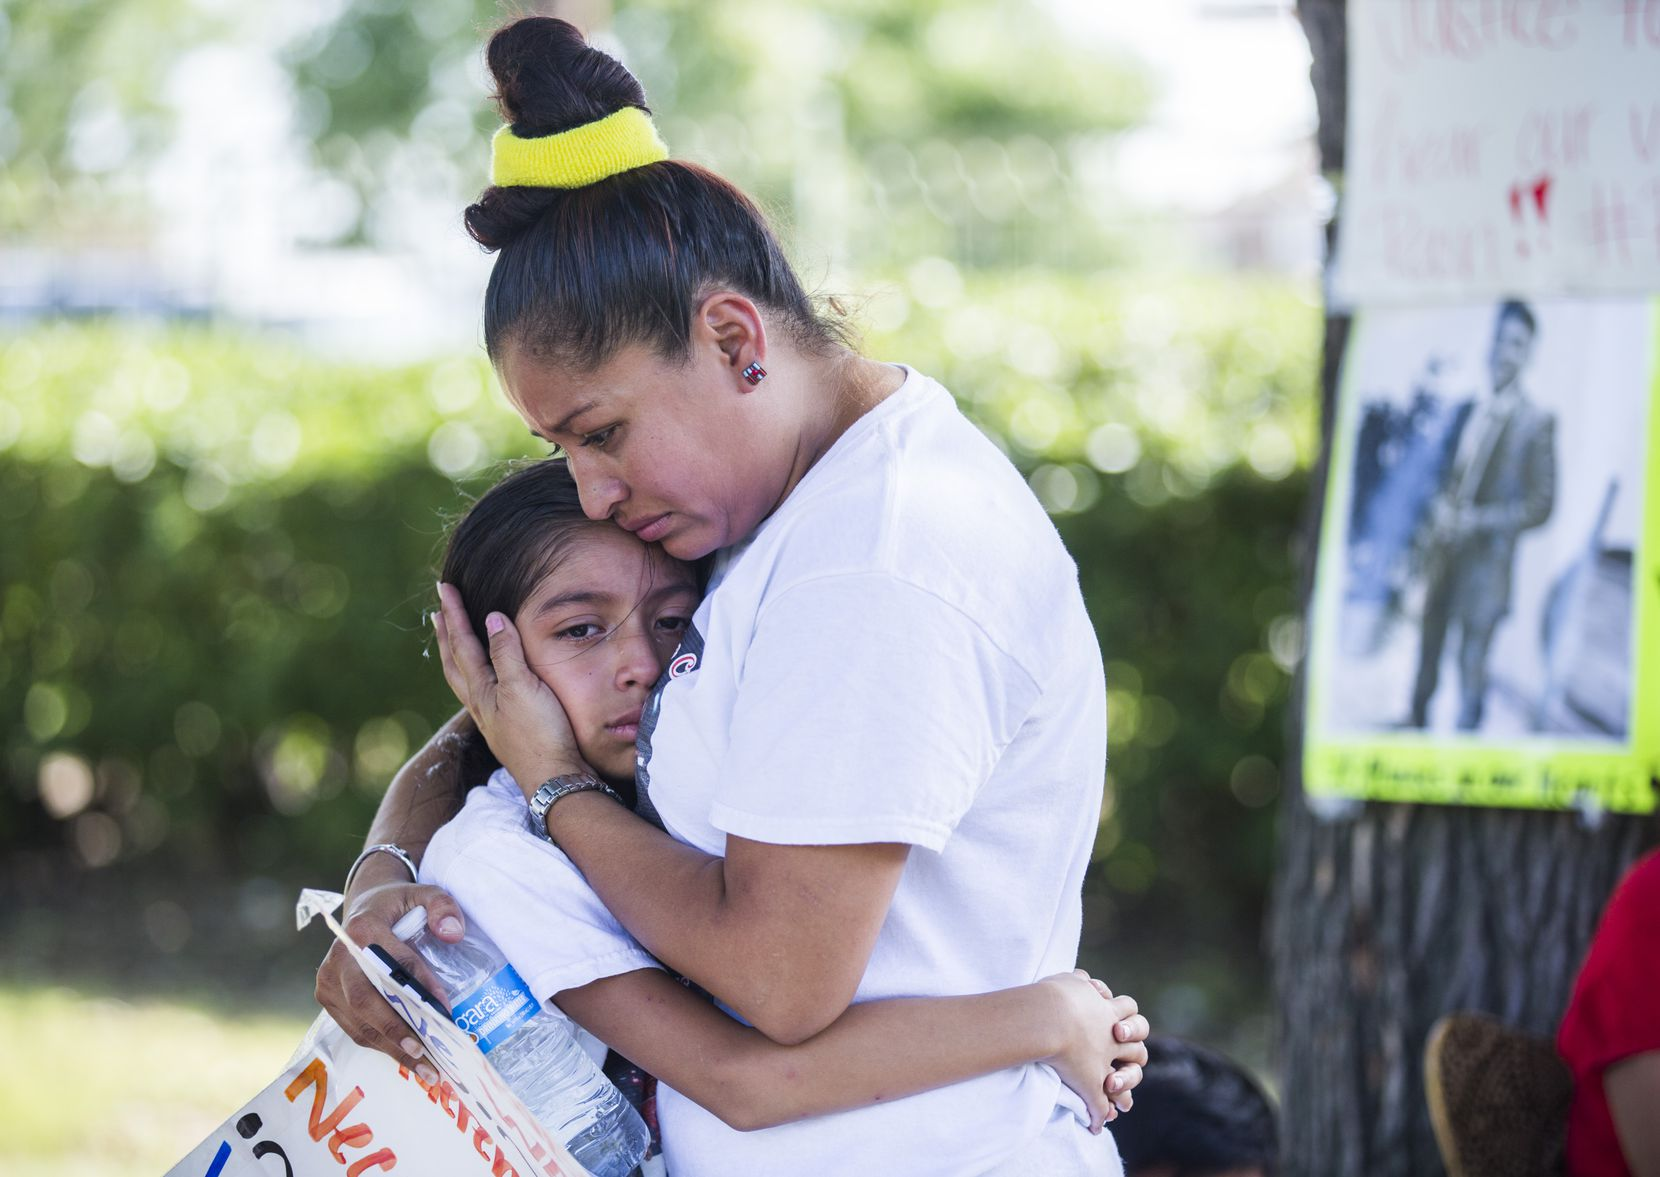 Jose Cruz's mother, Ana Henriquez, comforts Cruz's sister, Stephanie Eschriche, near Cruz's burial site on Sept. 9, 2016, at Crown Hill Memorial Park in Dallas.